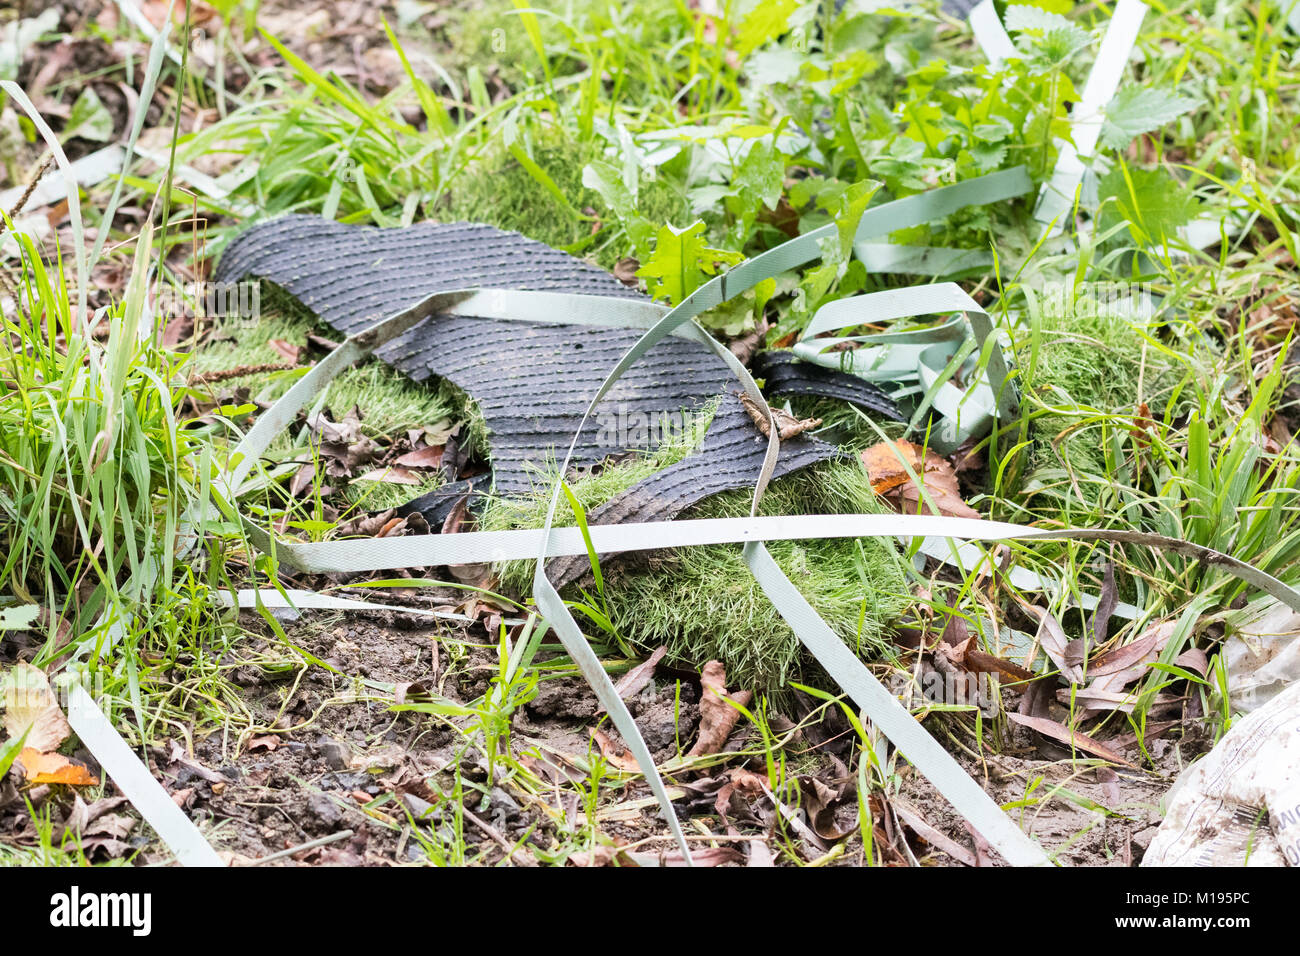 artificial grass and other plastic dumped in the countryside - England, UK - Stock Image